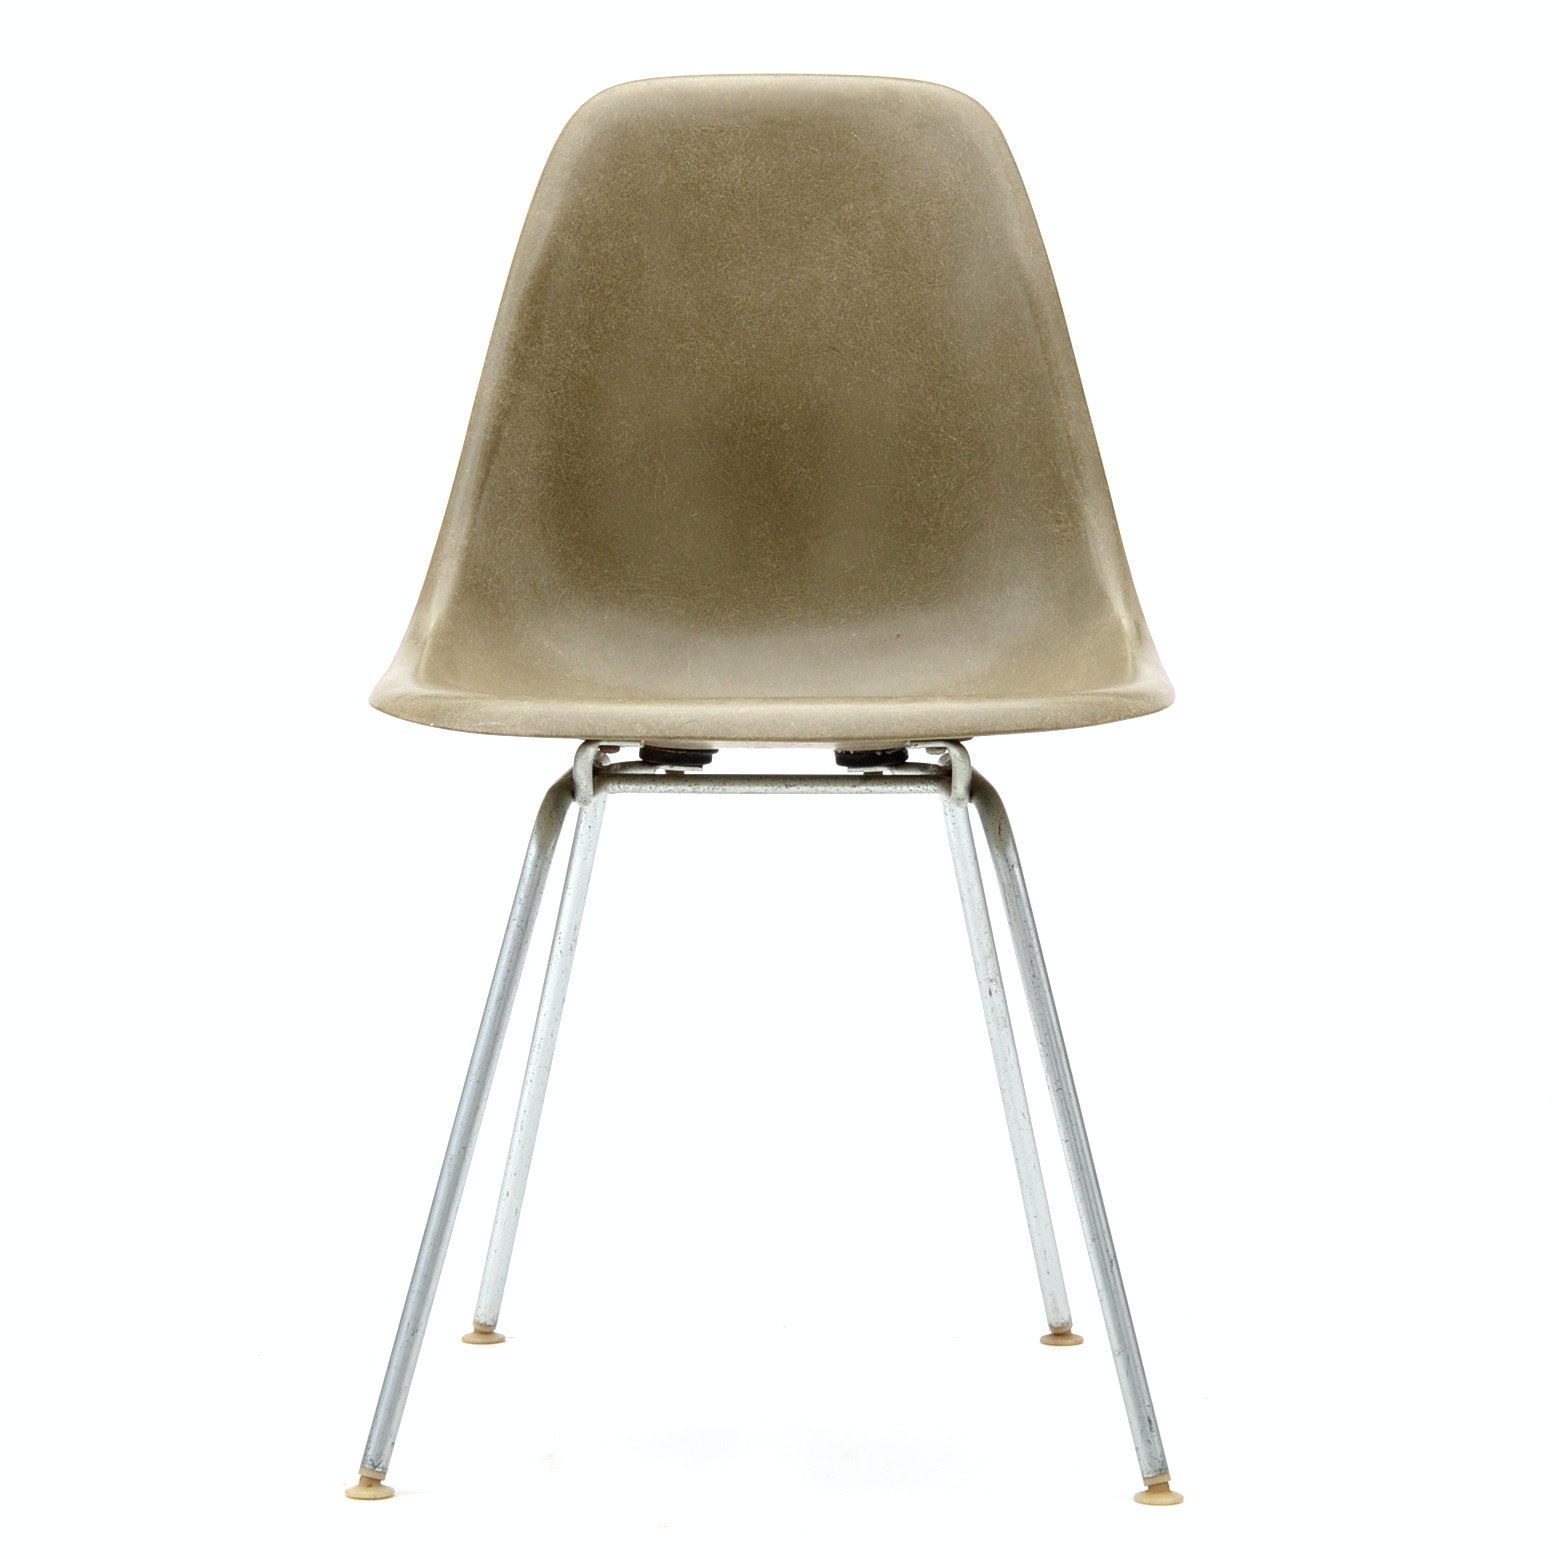 Gray Eames Shell Chair by Herman Miller